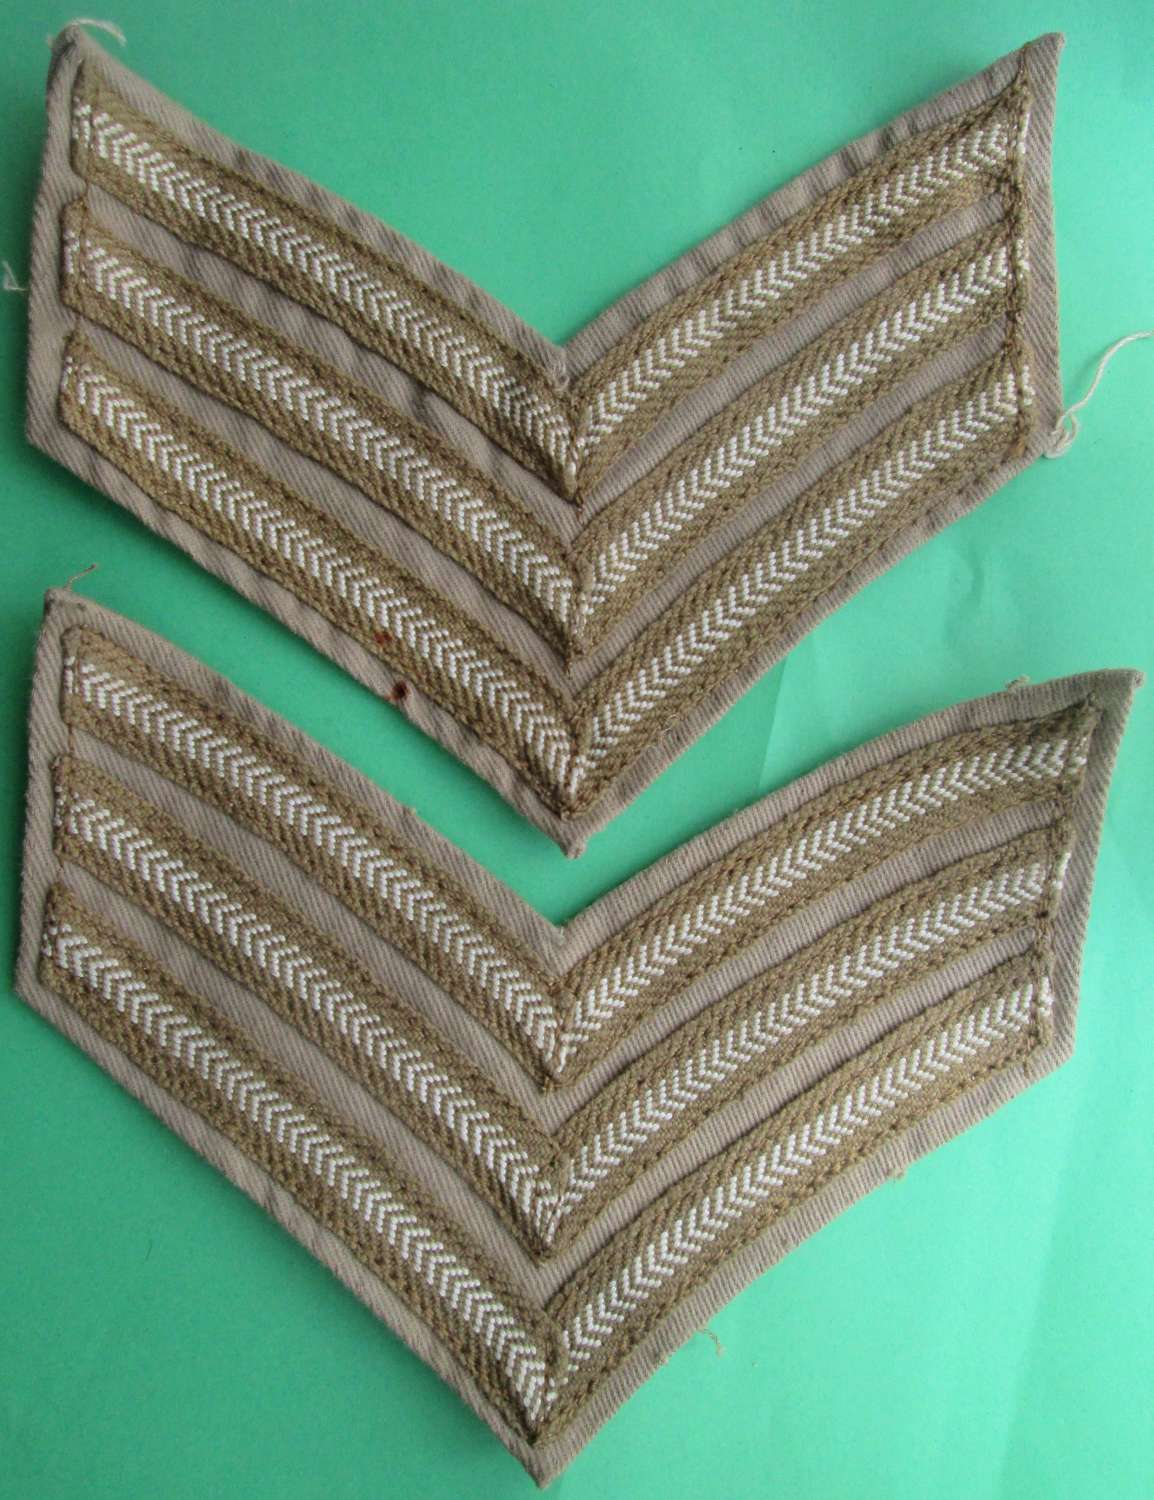 A PAIR OF WWII PERIOD TROPICAL SGTS STRIPS